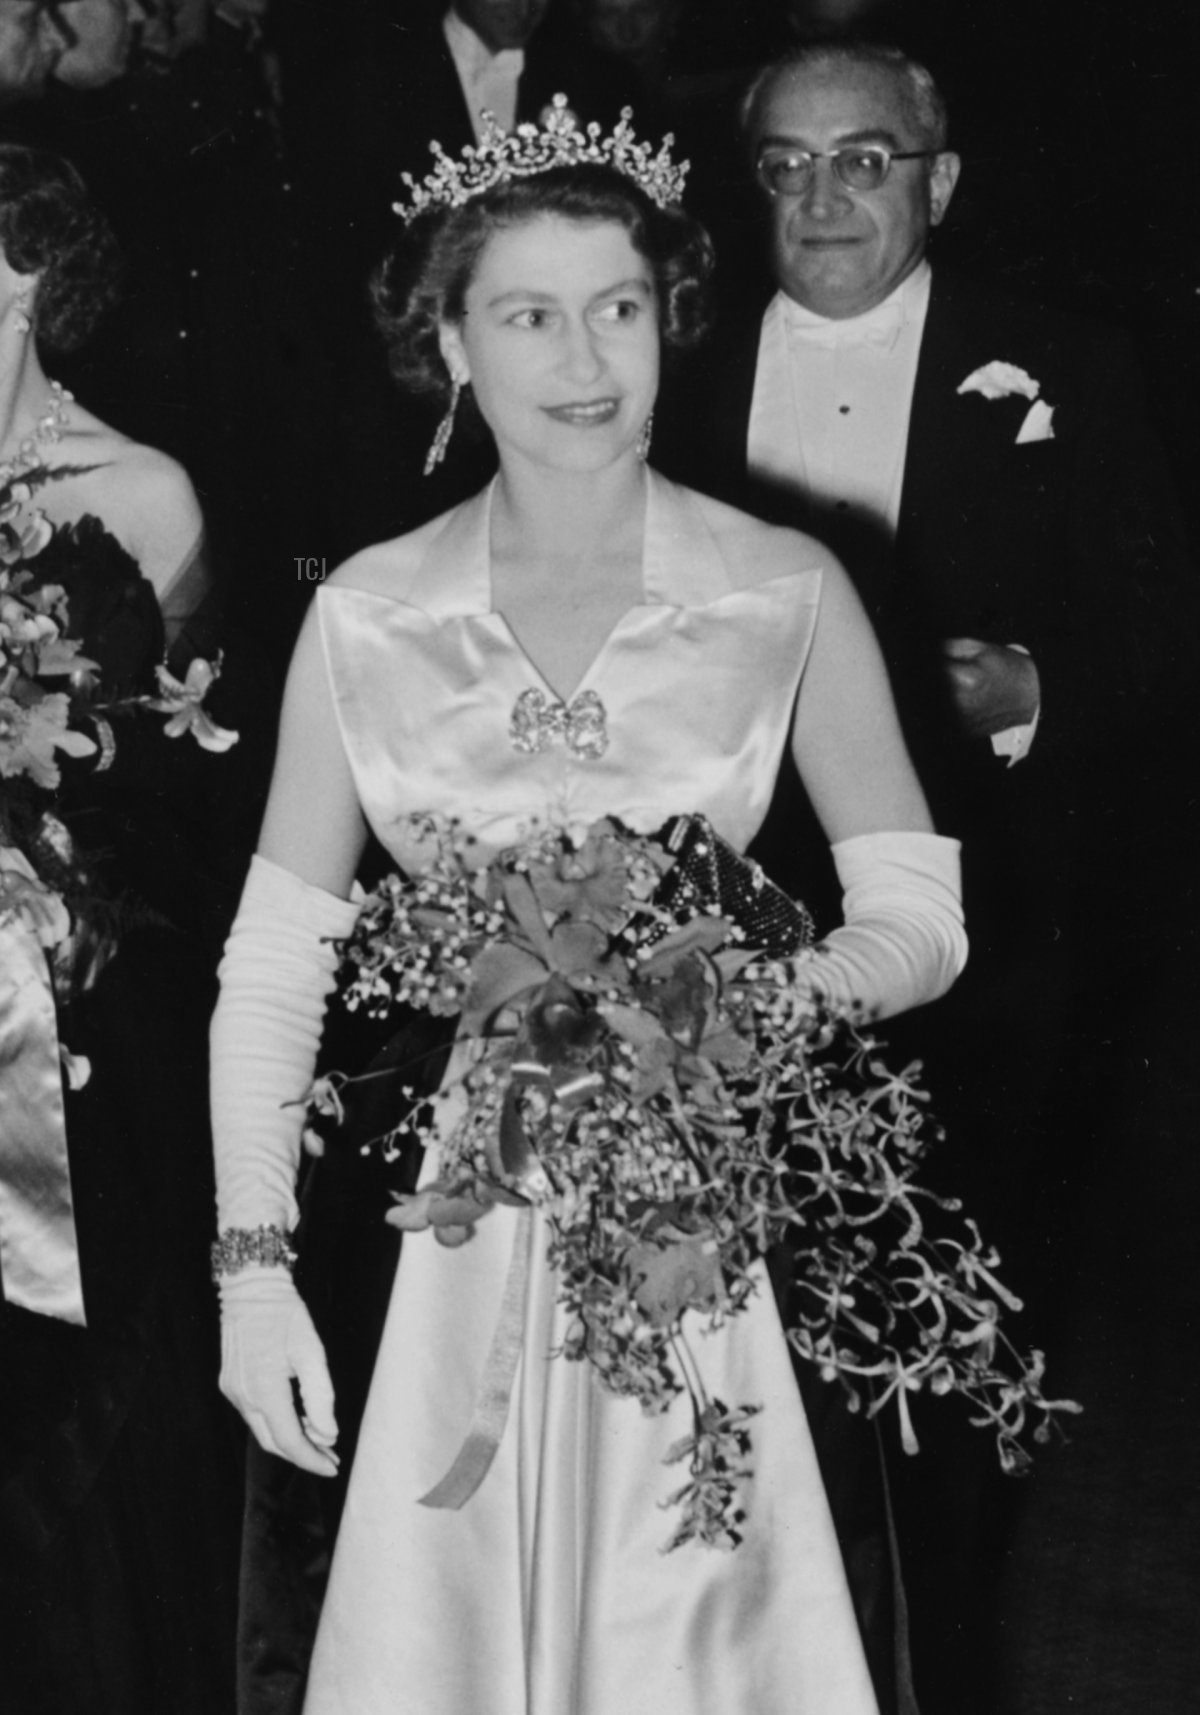 Queen Elizabeth II is escorted by Reginald Bromhead, the Chairman of the Cinematograph and Trade Benevolent Fund, as she and Princess Margaret (behind) leave the Royal Film Performance in Leicester Square, London, October 27th 1952